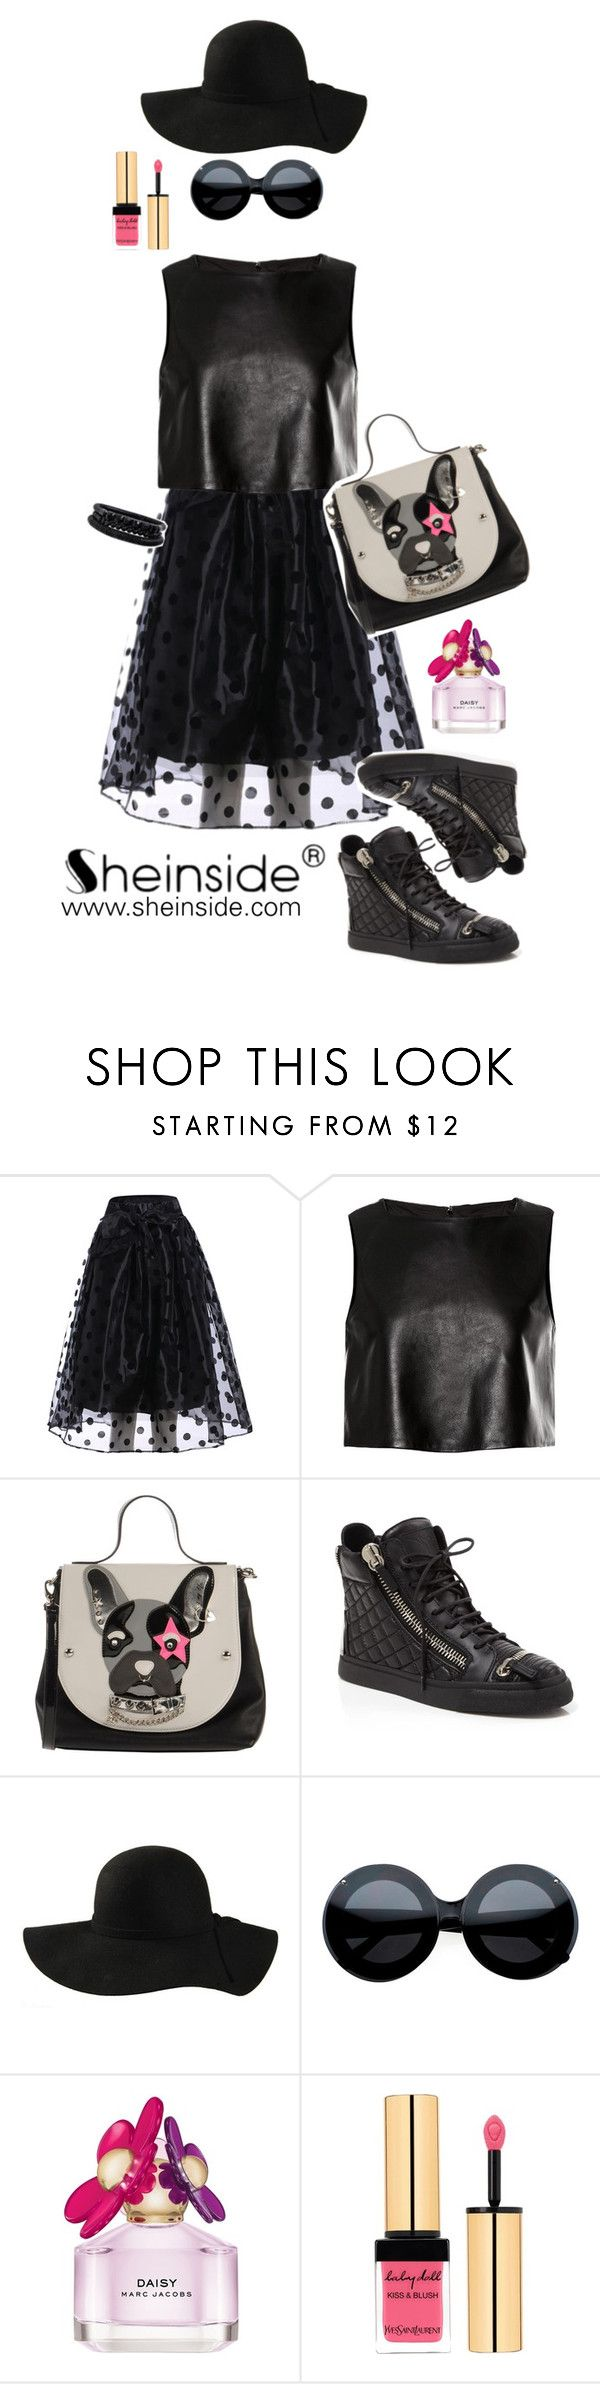 """City Chic Style with SheInside"" by mara-petcana ❤ liked on Polyvore featuring TIBI, TUA by Braccialini, Giuseppe Zanotti, Marc Jacobs, Yves Saint Laurent, Spring Street and Sheinside"